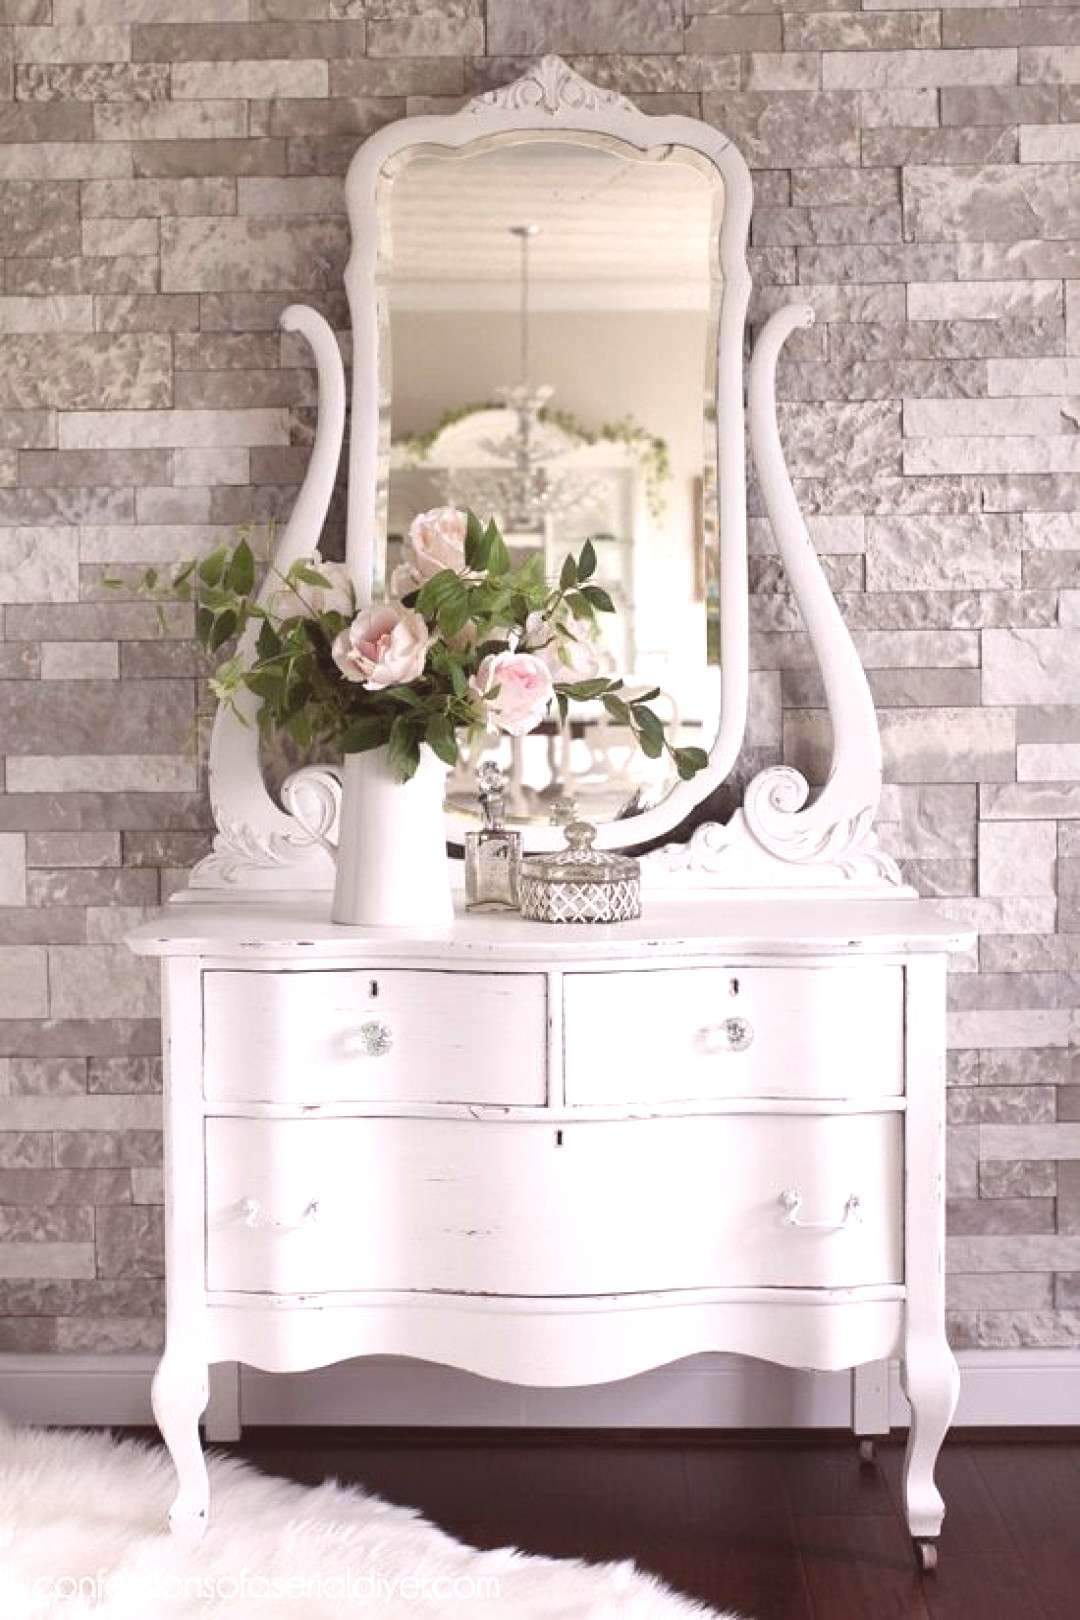 Painted Furniture Ideas | Amazing Painted Dresser Makeover Ideas- with before and after photos - Pa